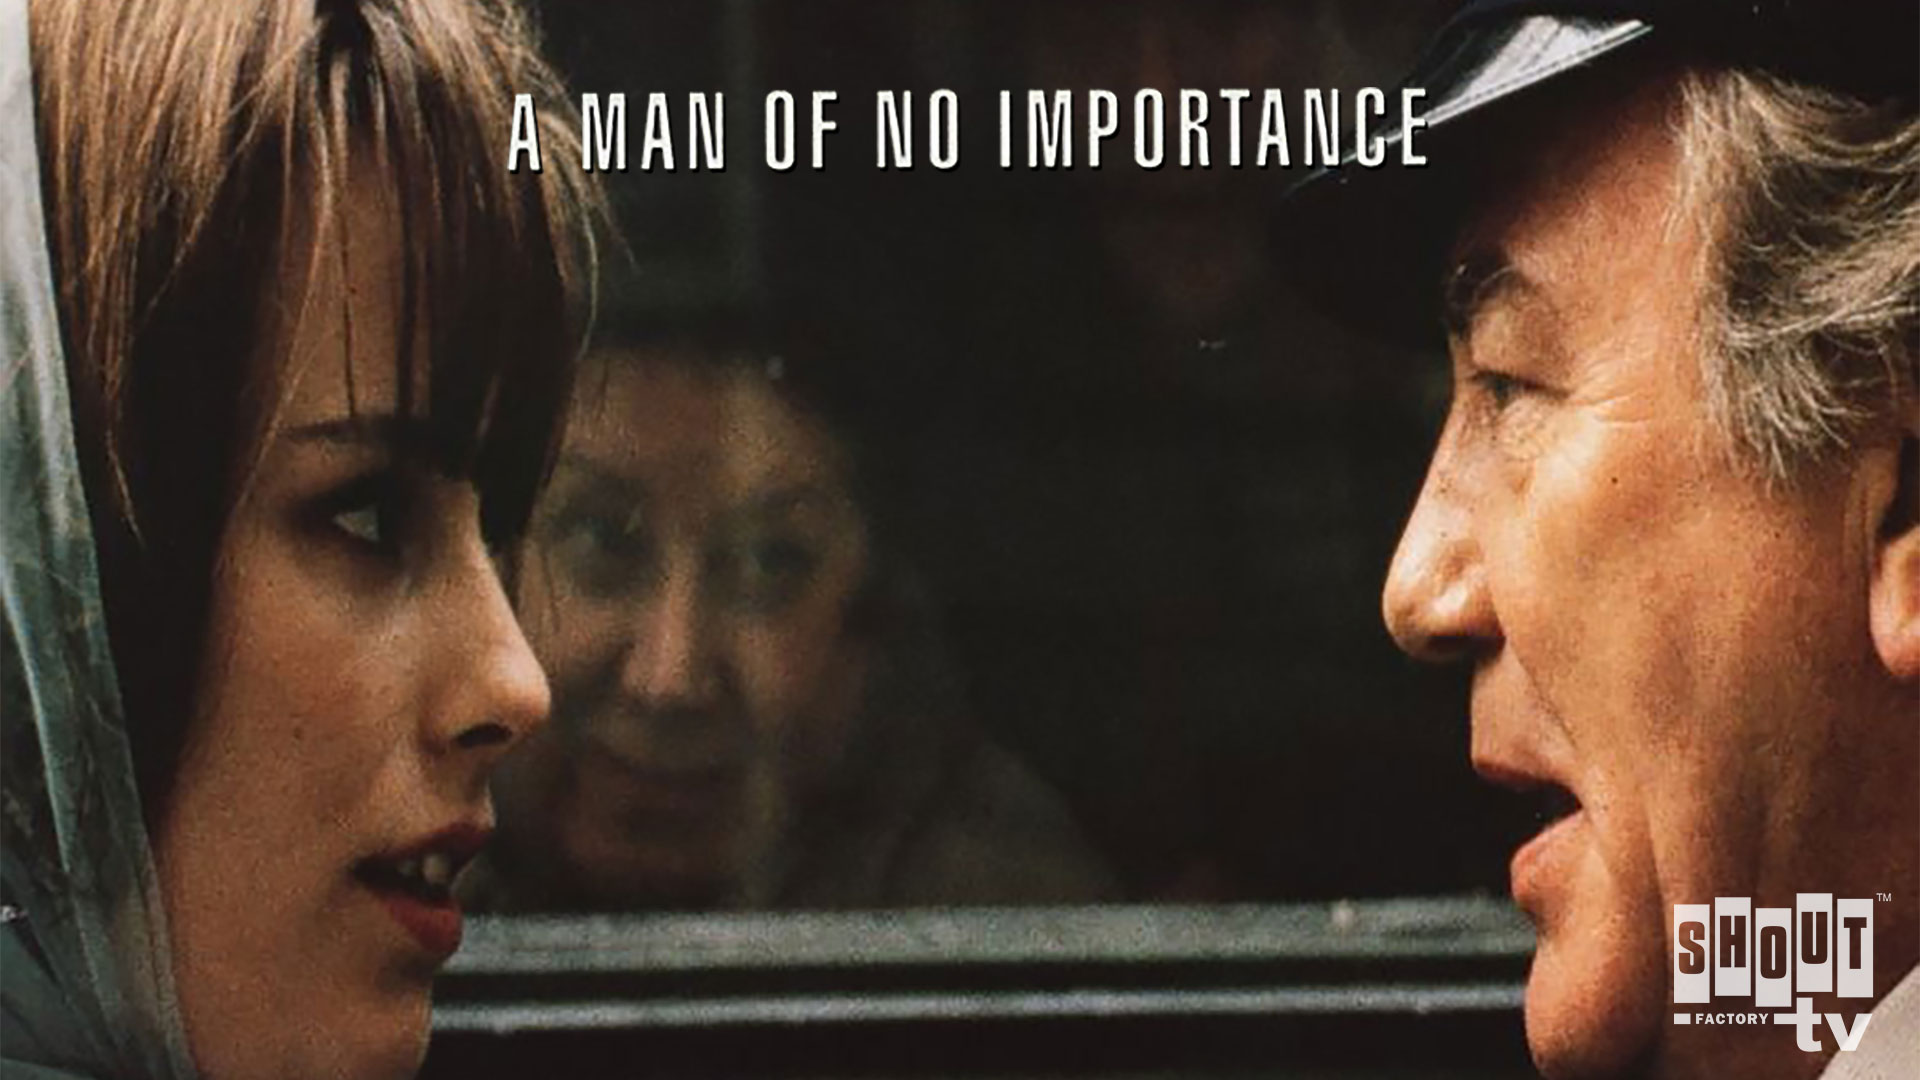 A Man Of No Importance - Trailer